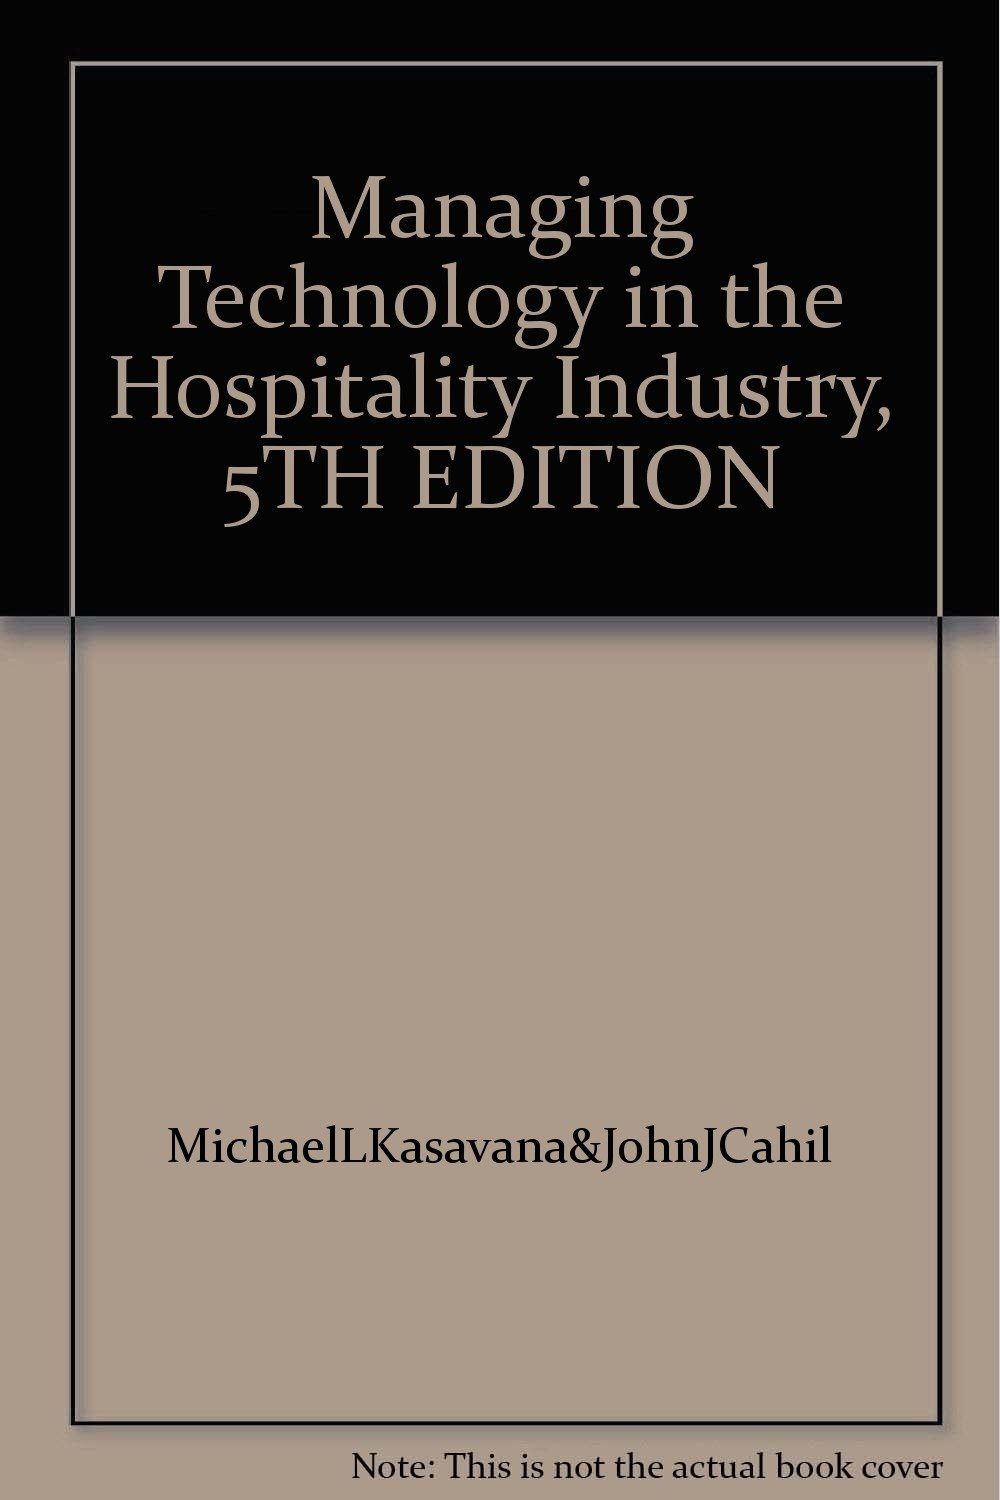 Download Managing Technology in the Hospitality Industry, 5TH EDITION pdf